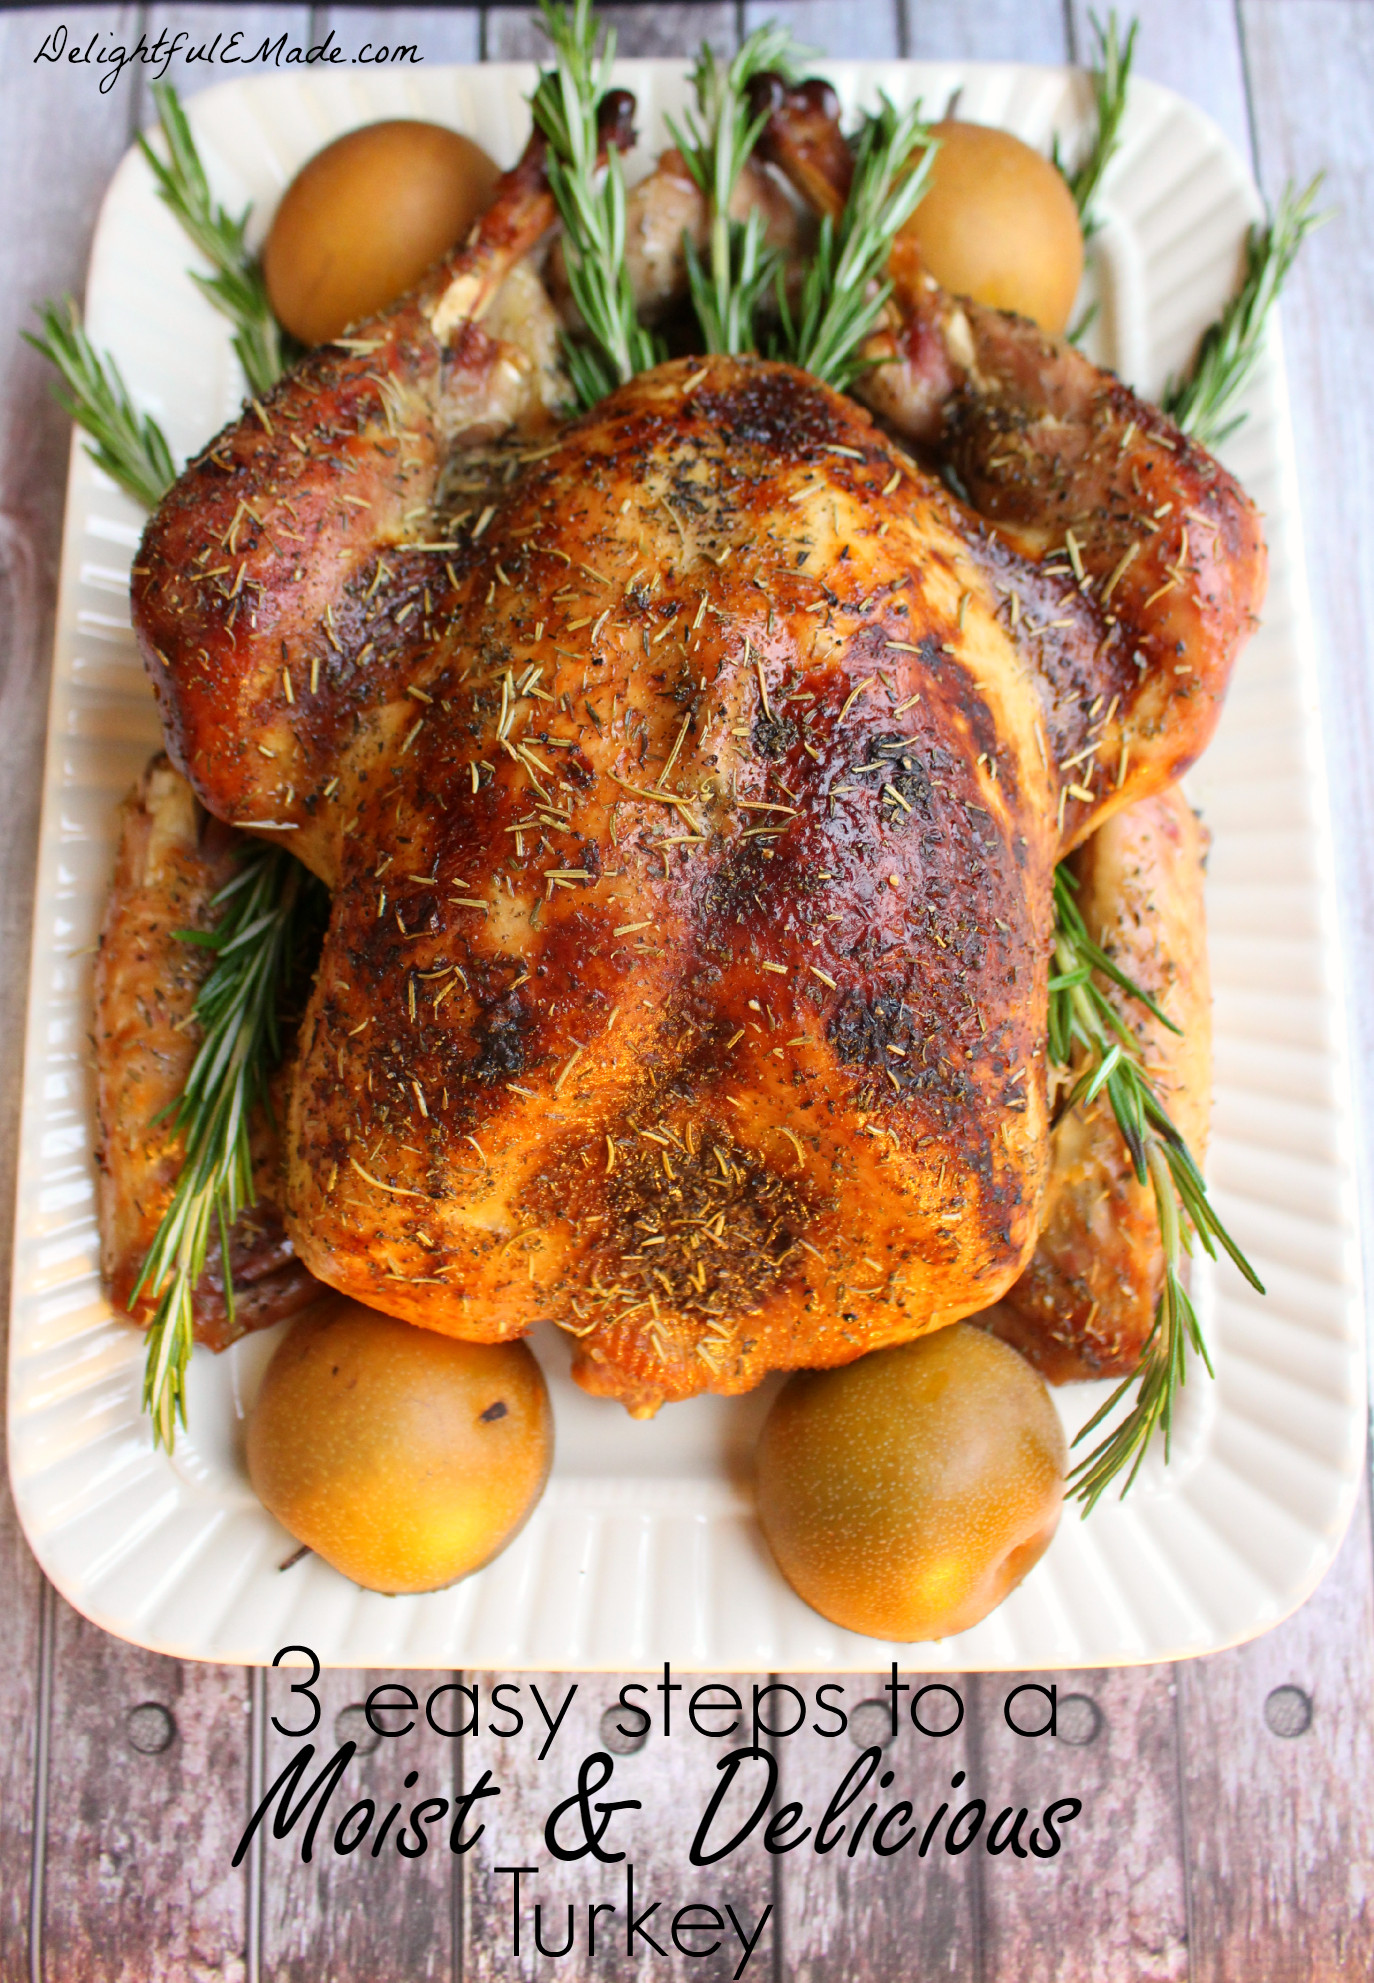 Making Thanksgiving Turkey  3 Easy Steps to a Moist and Delicious Turkey Delightful